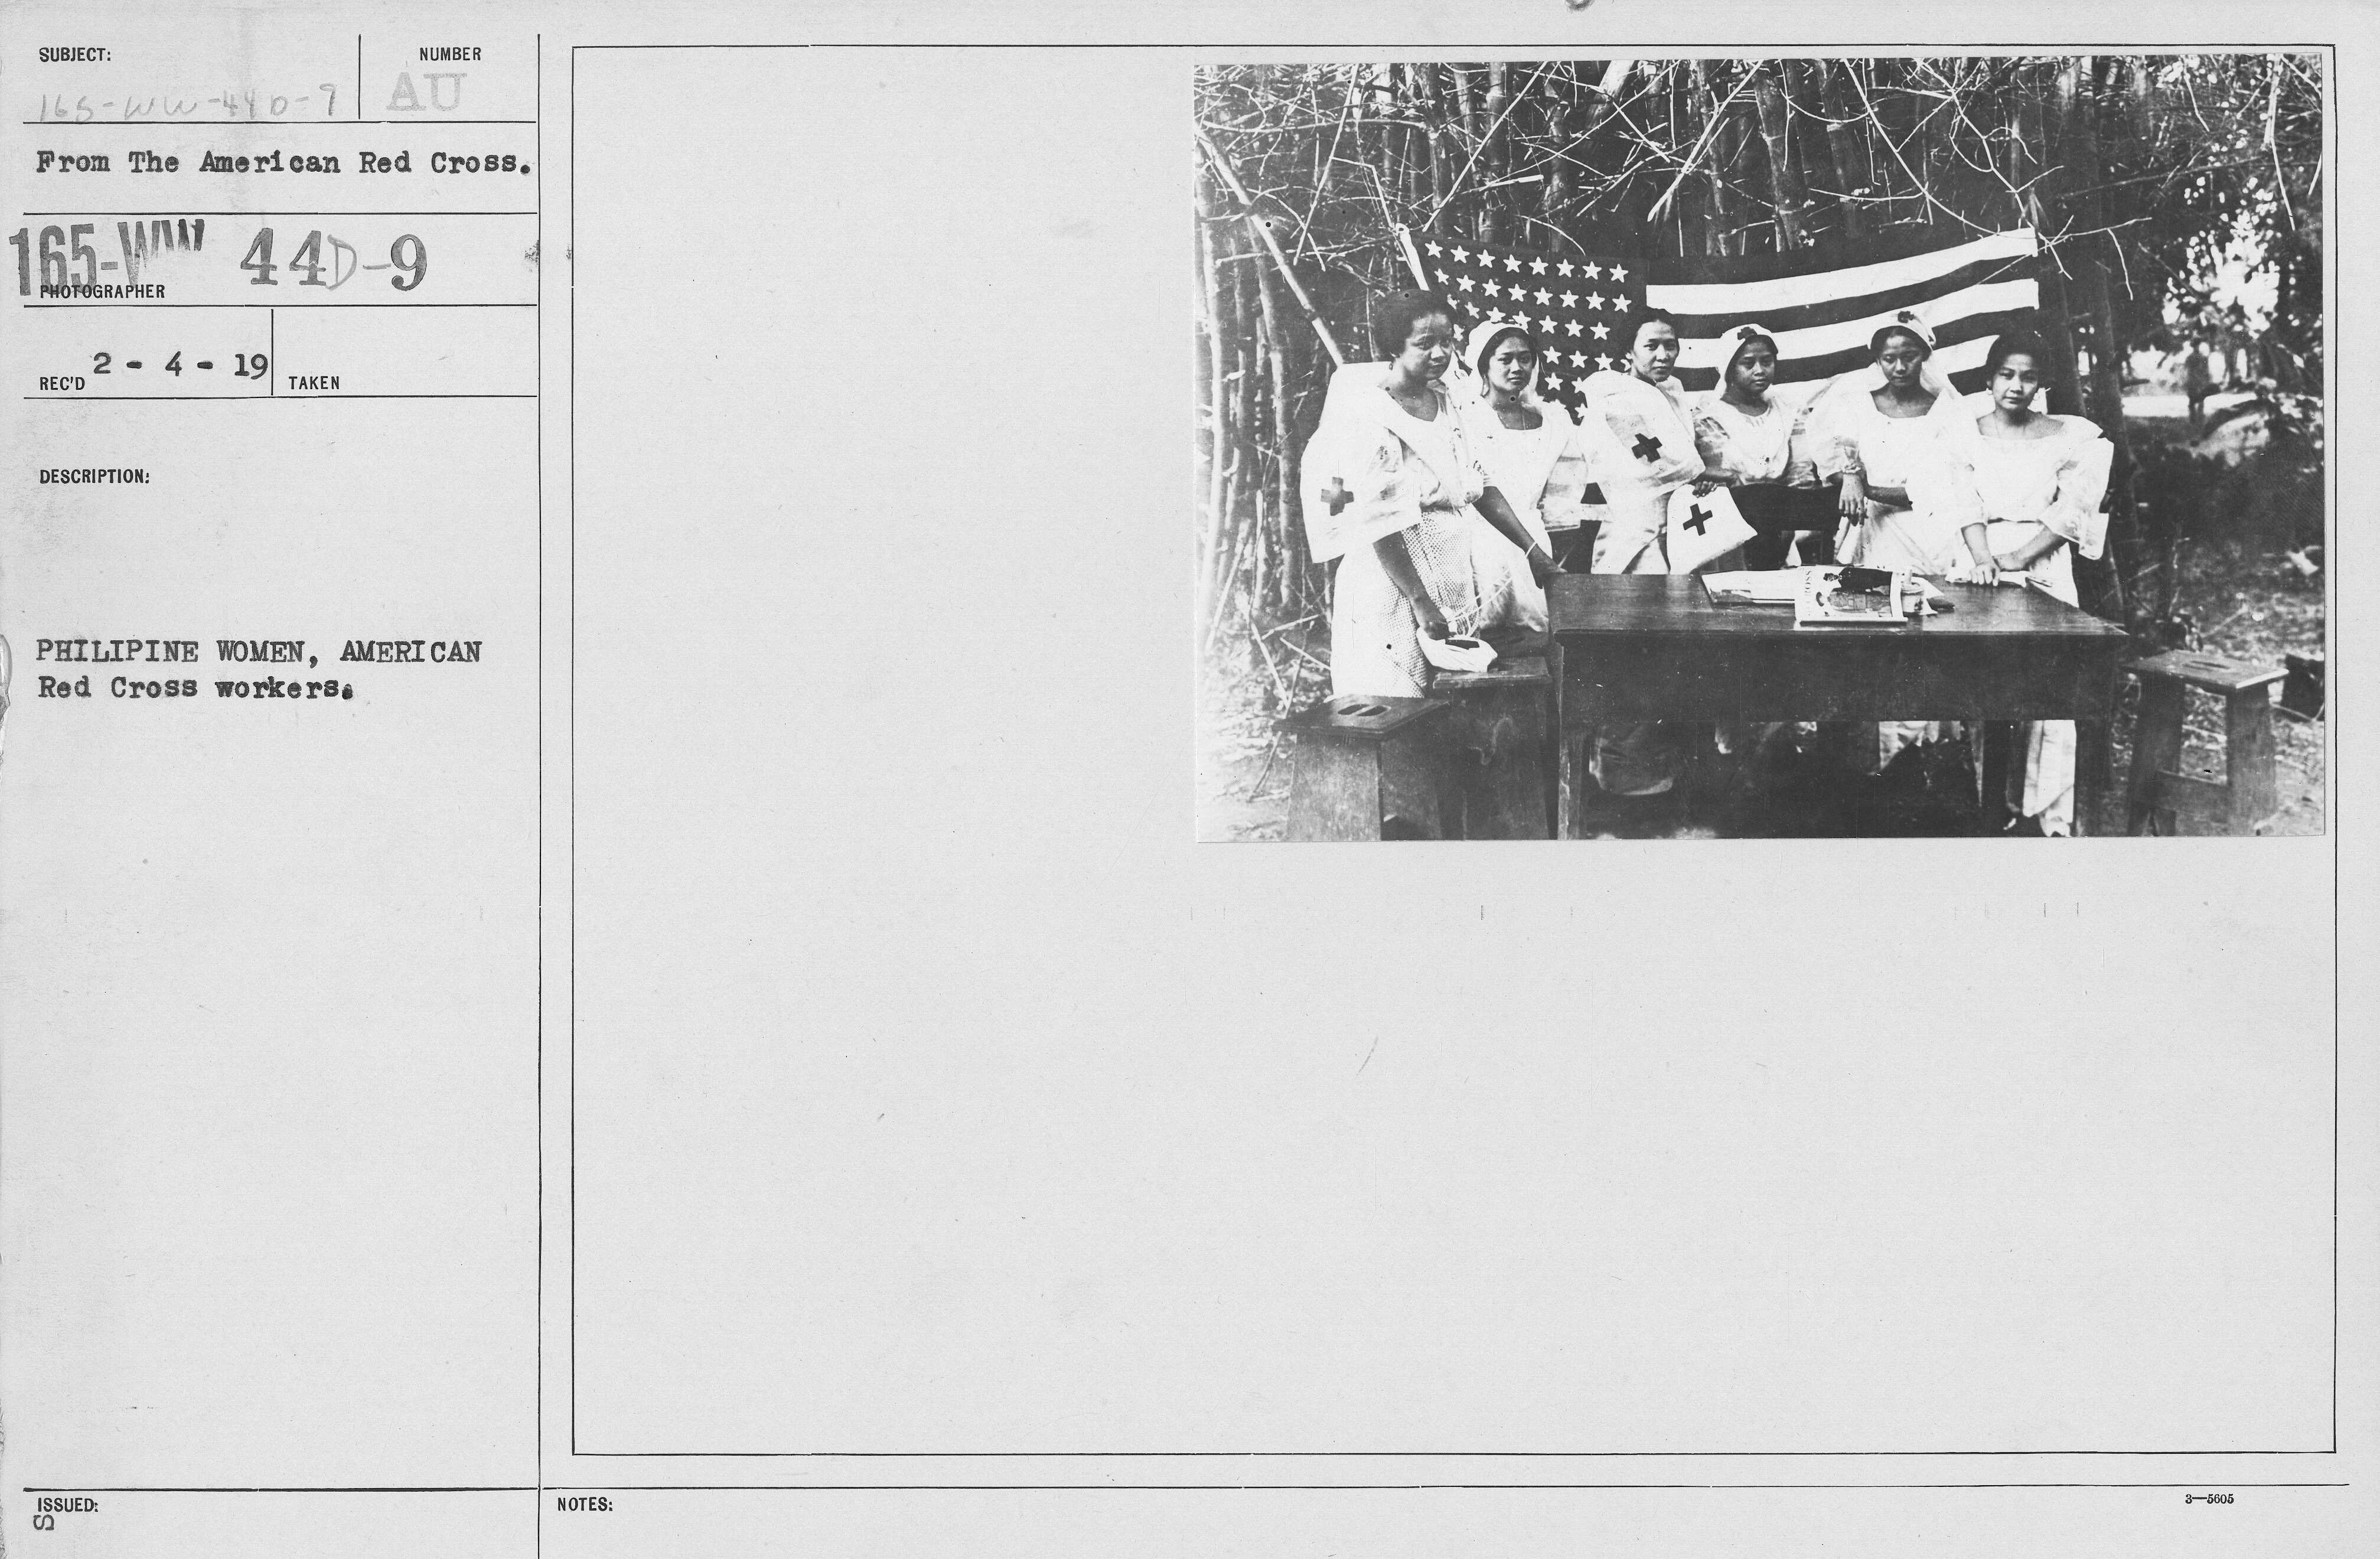 American Red Cross - Switzerland, & Misc. - Philipine women, American Red Cross workers